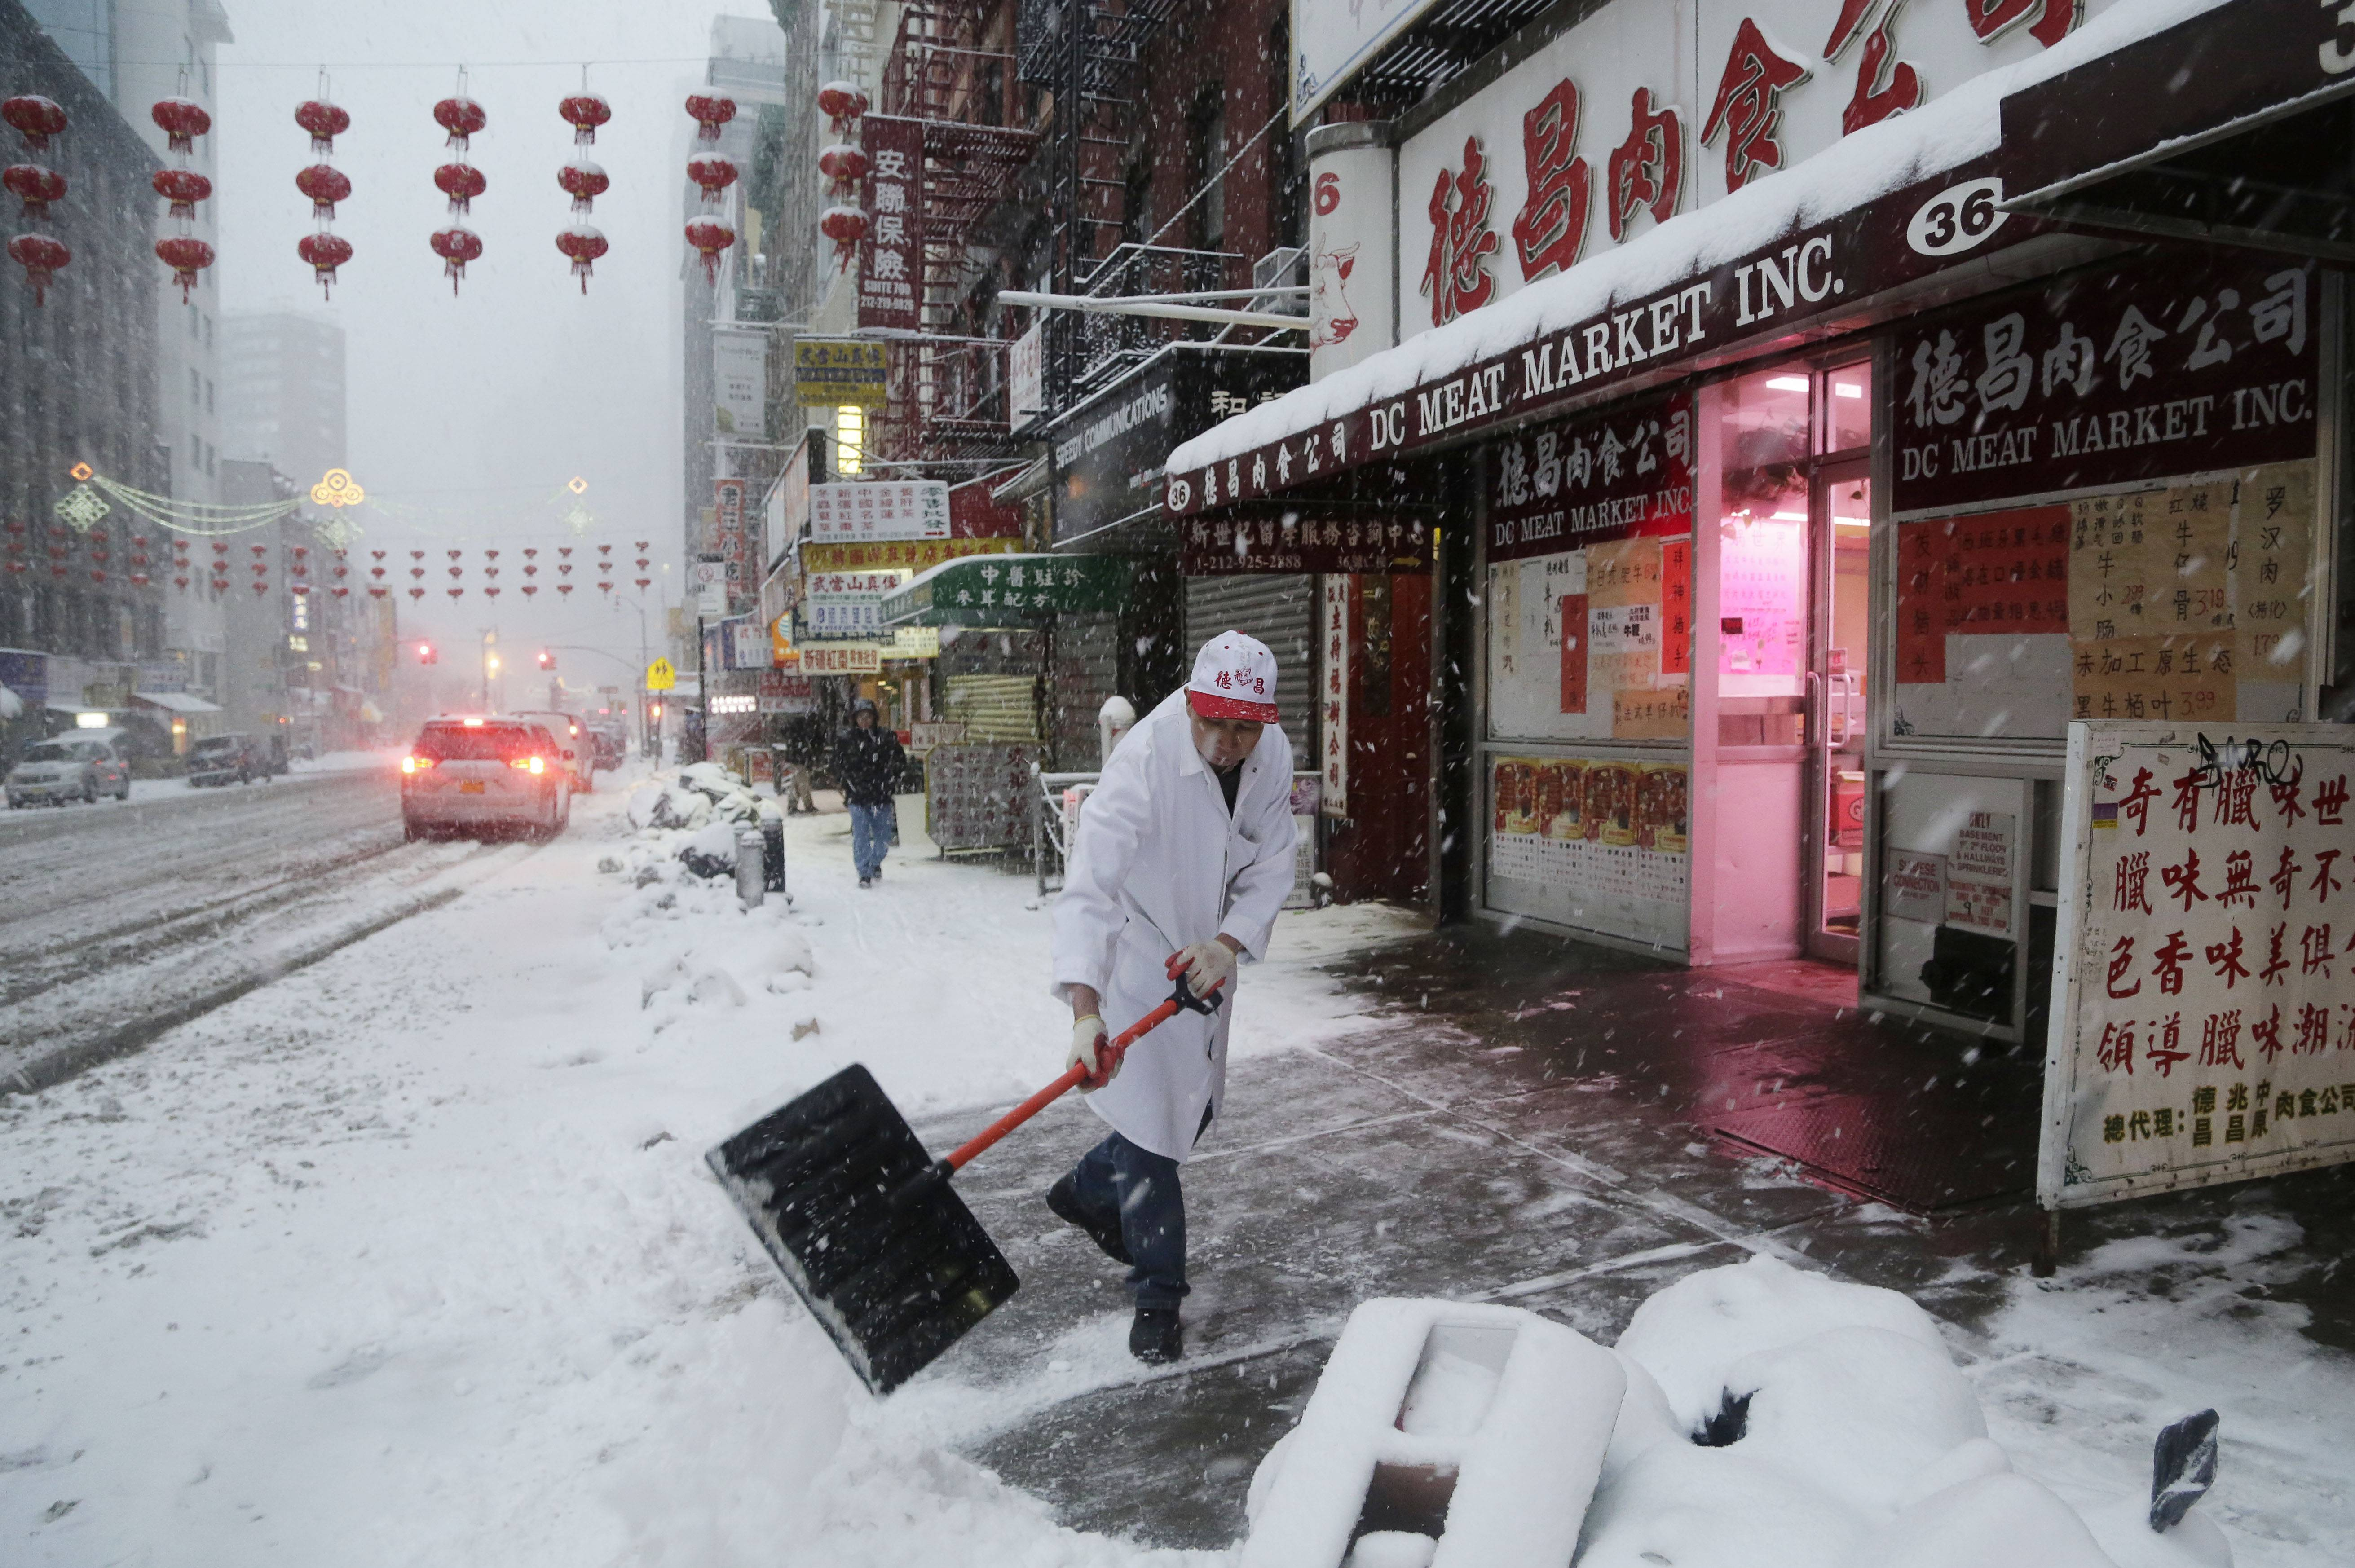 A man clears snow in front of the DC Meat Market in the Chinatown neighborhood of New York, Thursday, Feb. 13, 2014. Snow and sleet are falling on the East Coast, from North Carolina to New England, a day after sleet, snow and ice bombarded the Southeast.